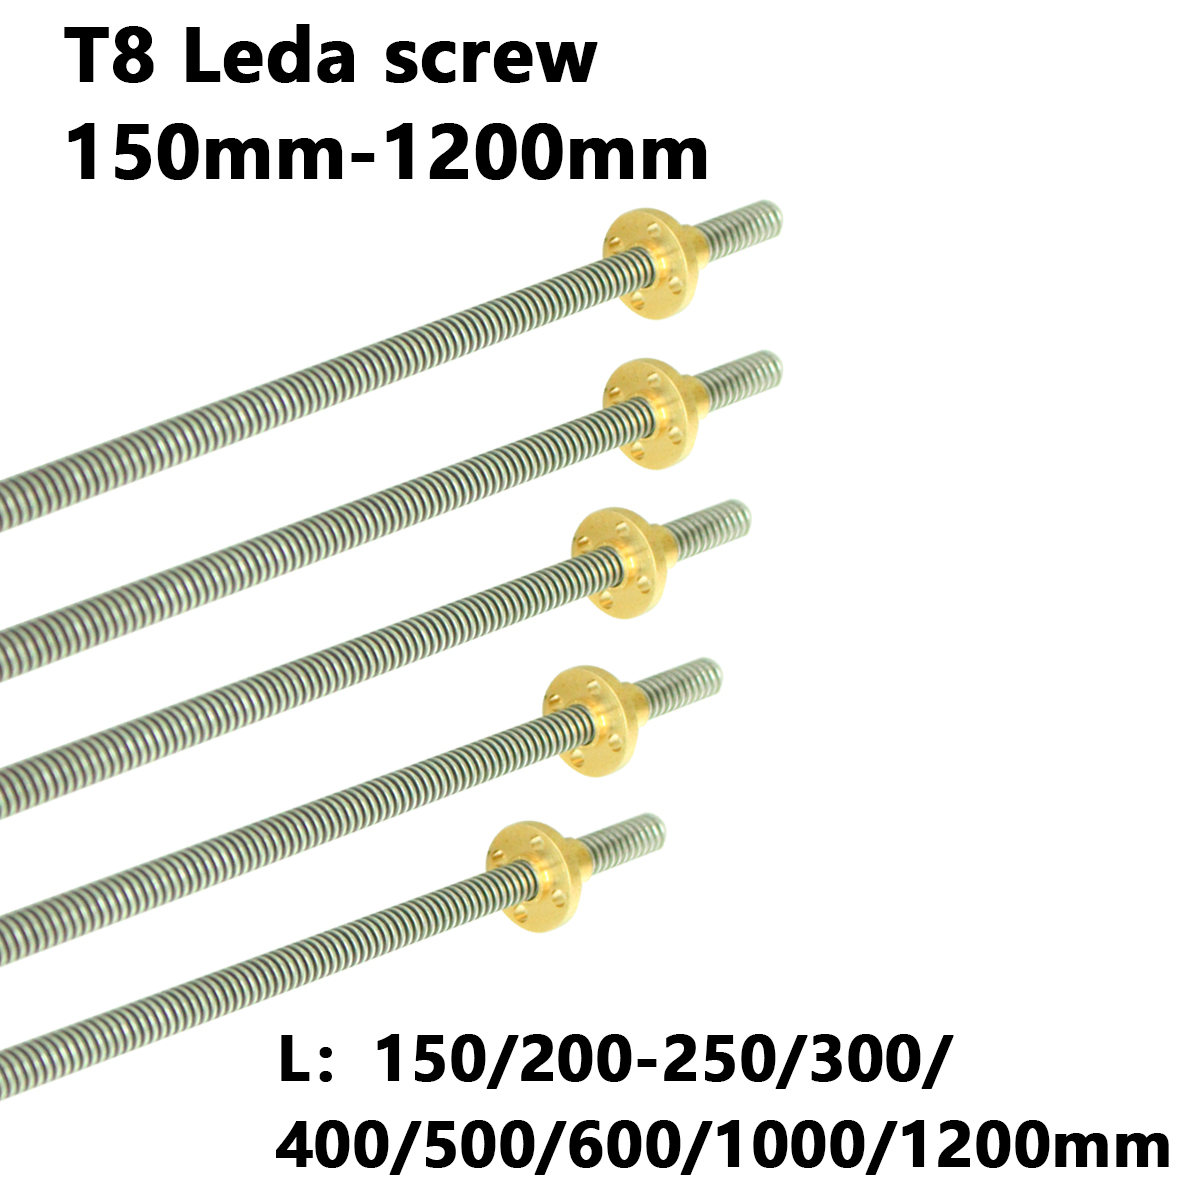 T8 Lood Schroef Staaf Od 8 Mm Pitch 2 Mm Lood 2 Mm 150 200 300 350 400 500 600 1000 1200 Mm Met Messing Moer Voor Cnc 3D Printer